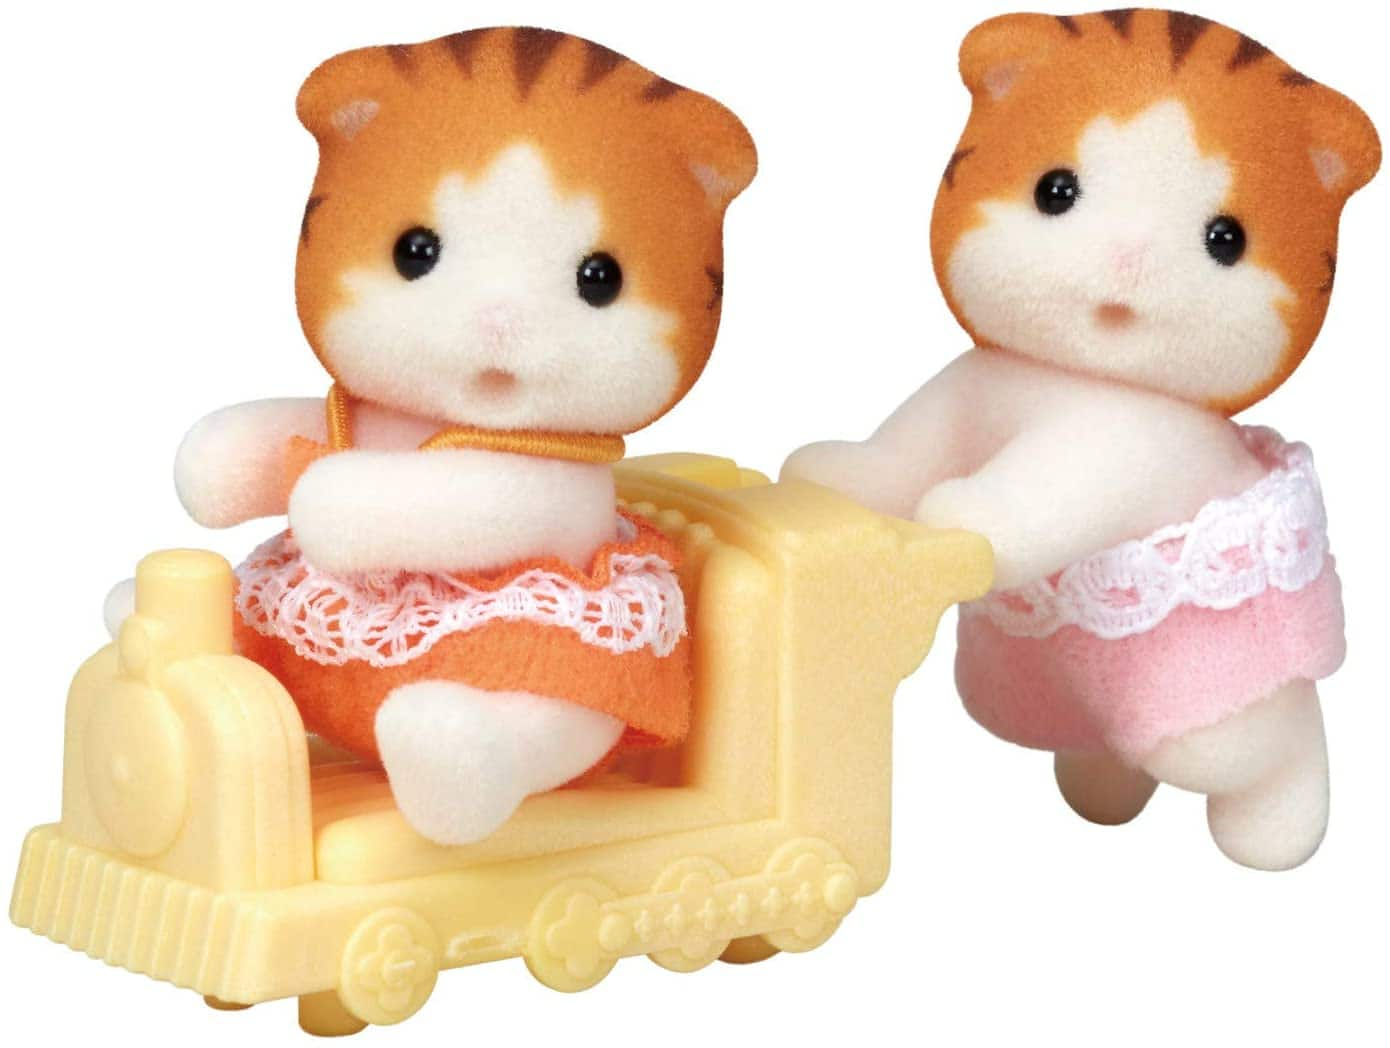 4-Pc Calico Critters Maple Cats Twin Set or 3-Pc Calico Critters Poodle Twins Set